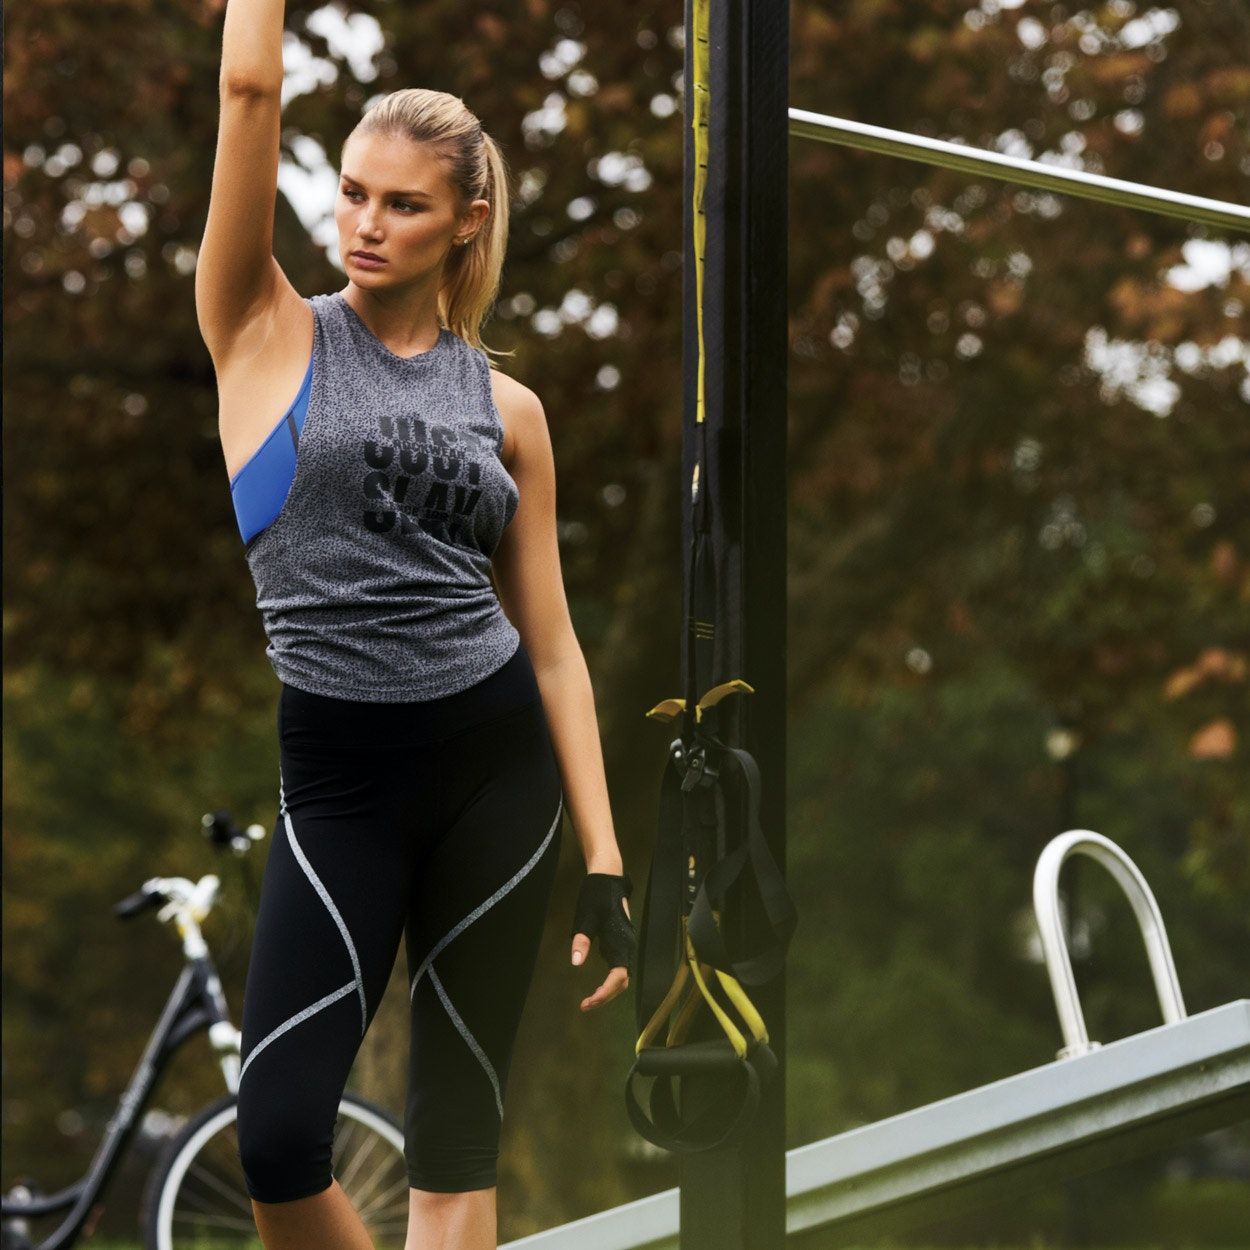 Shop 2 for $50 - Rockwear Women's Workout Tops